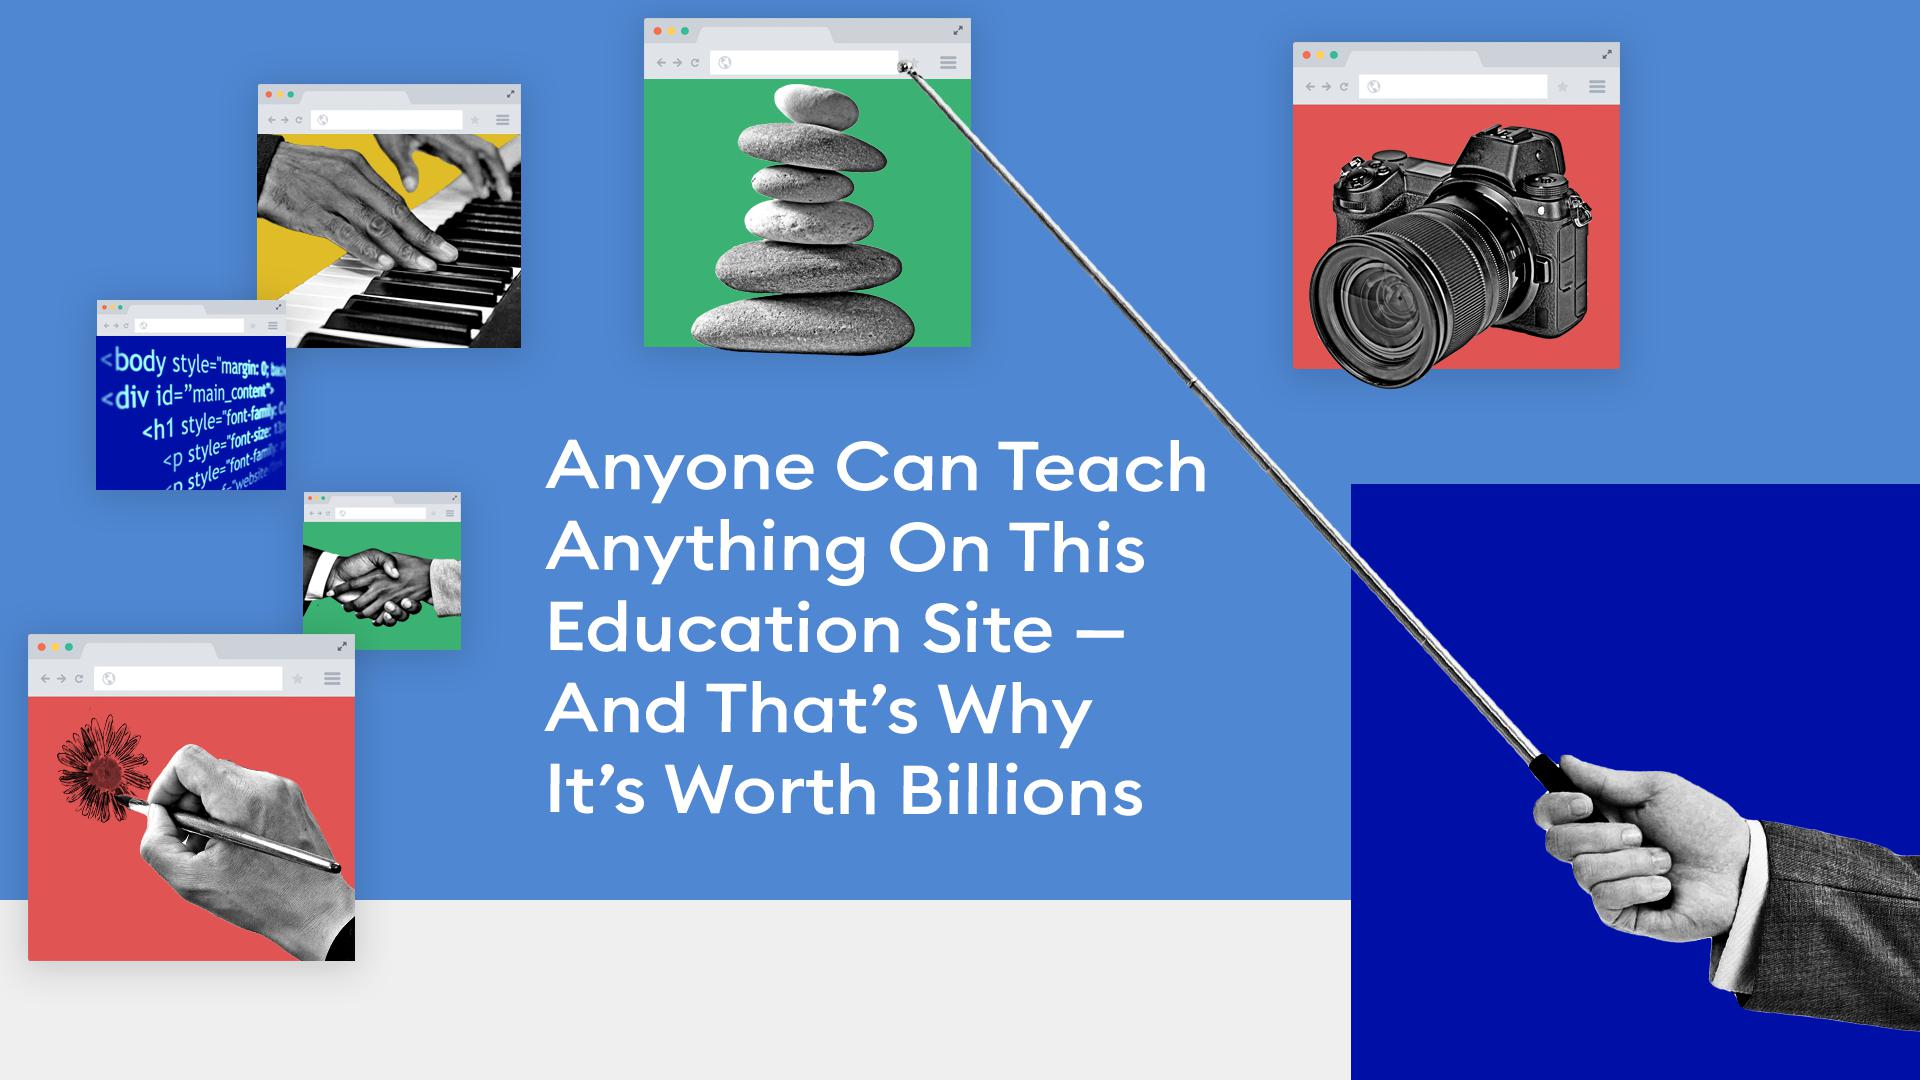 Anyone Can Teach Anything On This Education Site—And That's Why It's Worth Billions